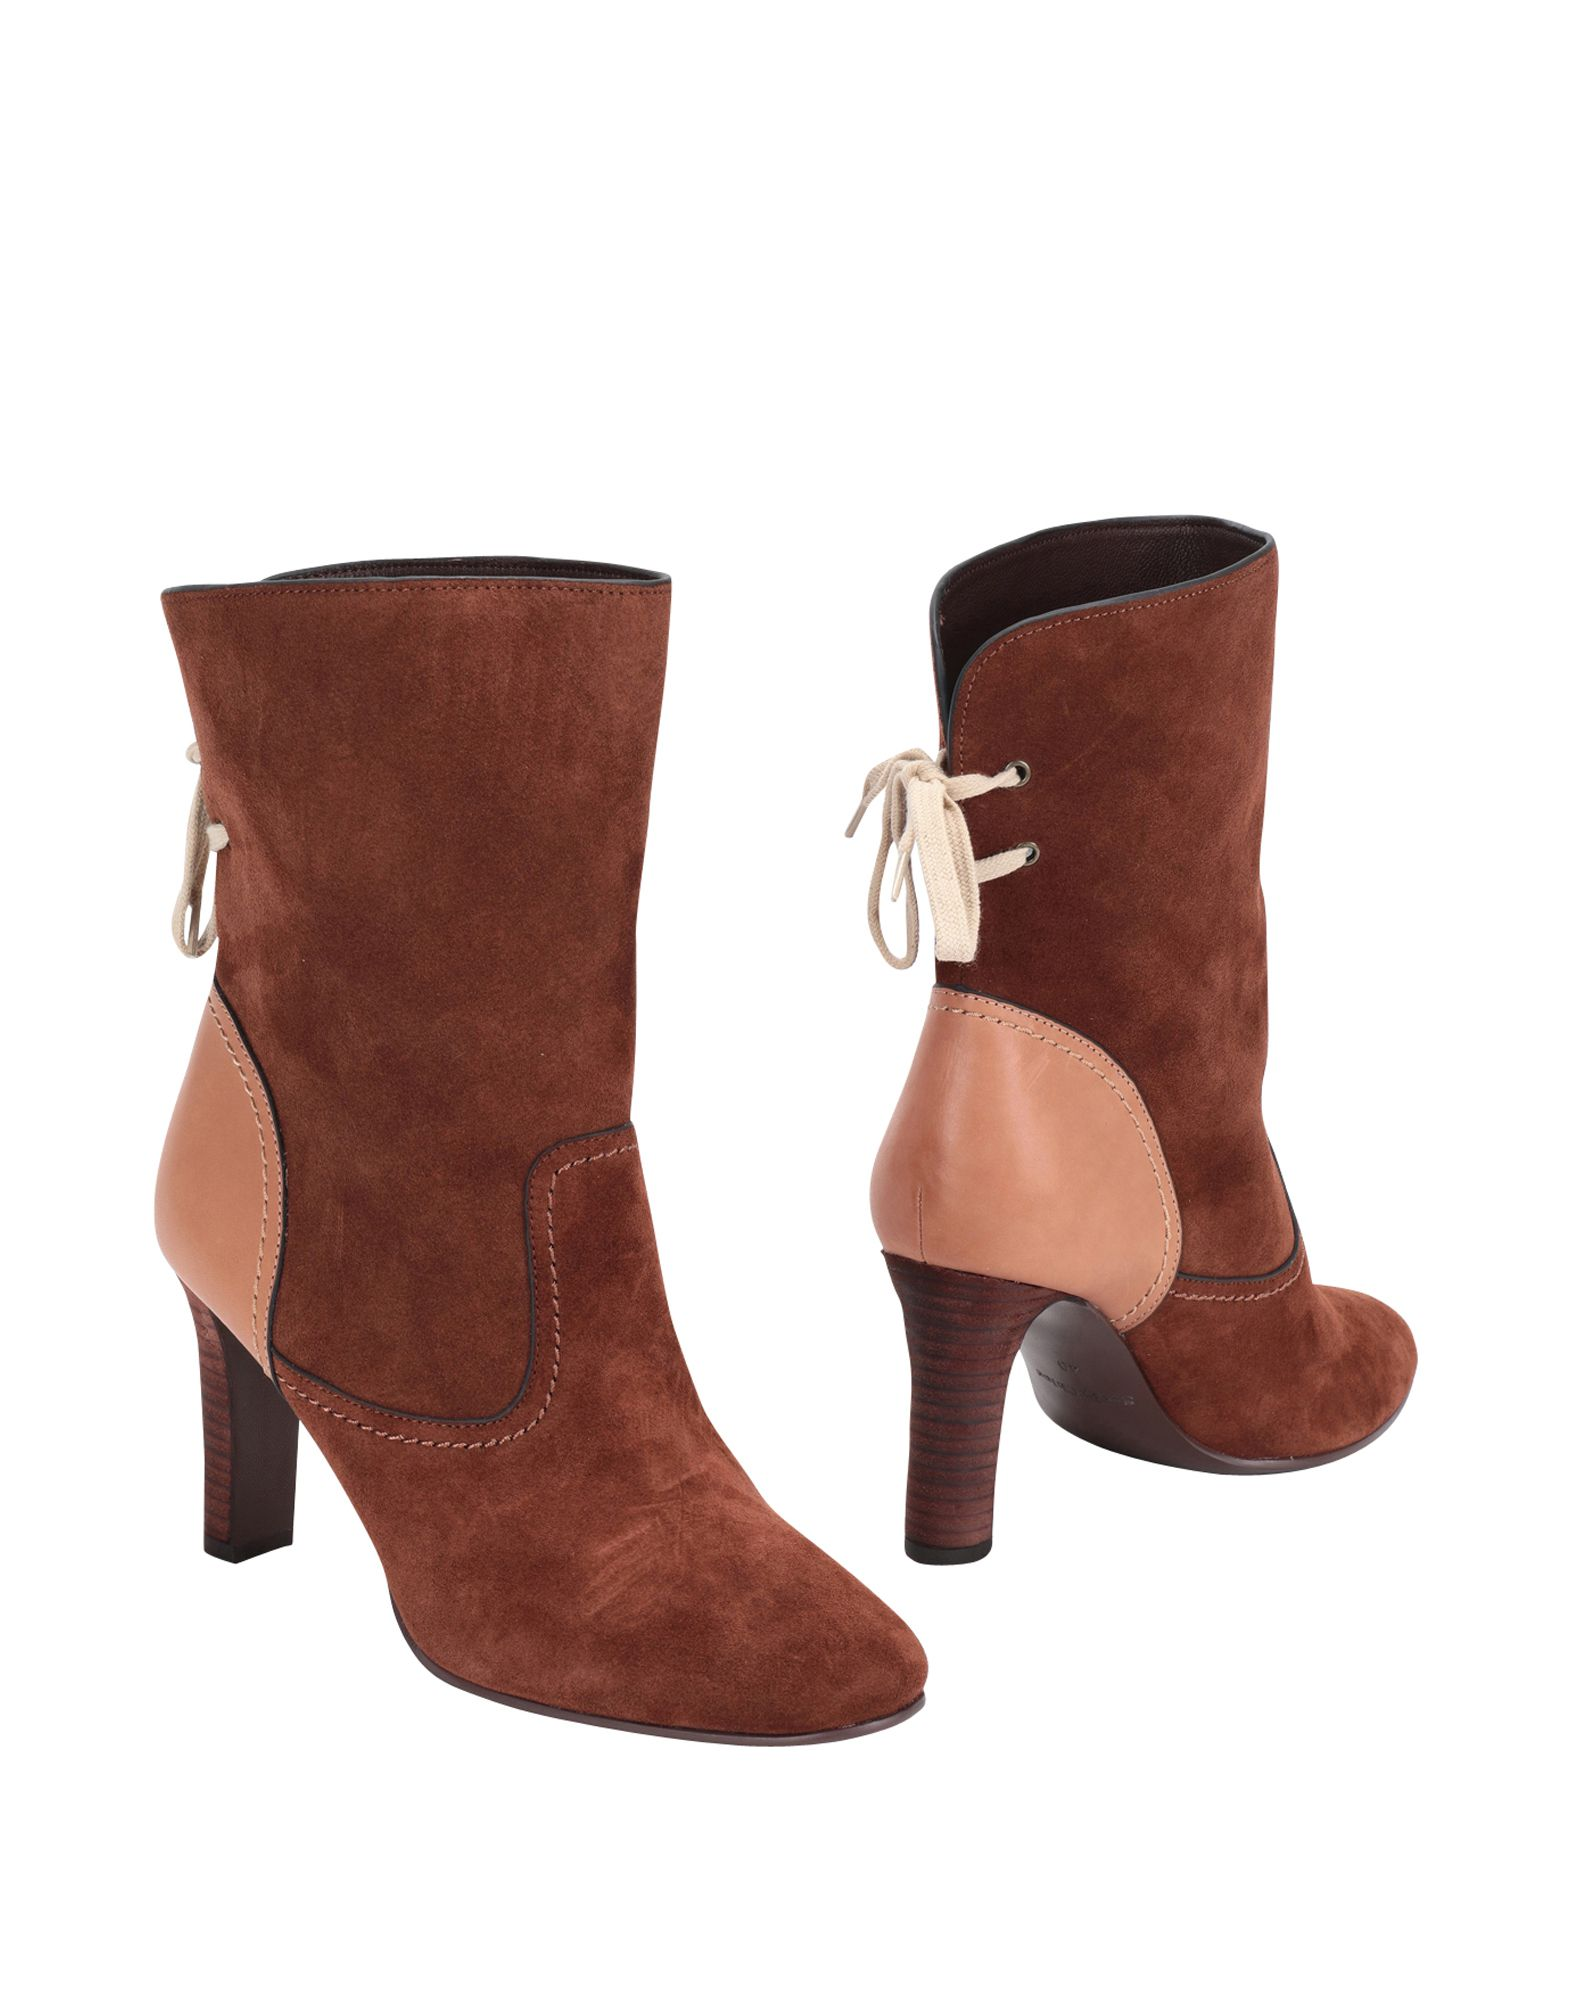 Bottine See By Chloé Femme - Bottines See By Chloé Chocolat Remise de marque